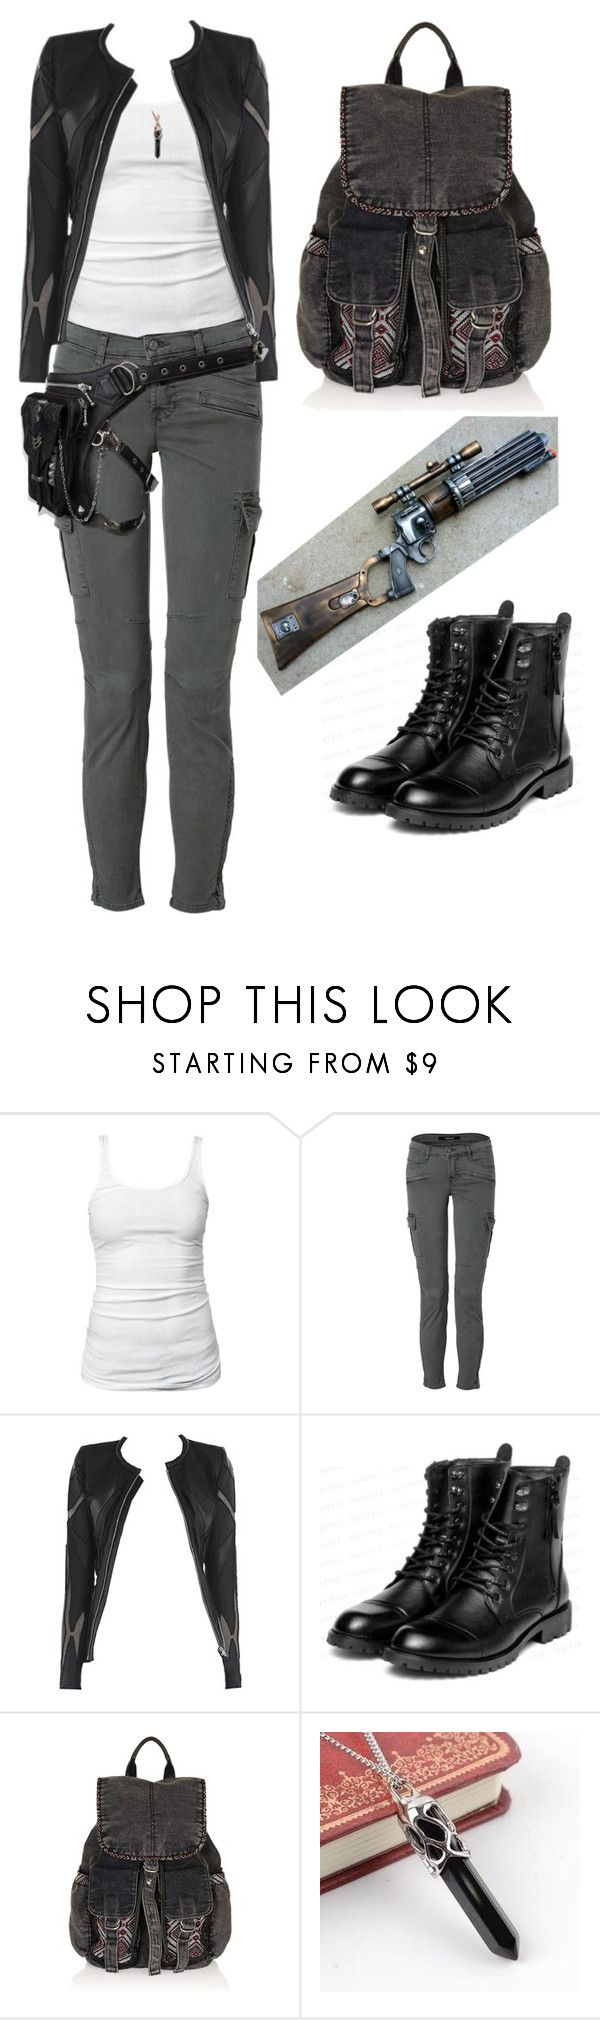 """""""Dystopian future hero"""" by avalonsappire ❤ liked on Polyvore featuring James Perse, J Brand, Allegra, yeswalker, Topshop, Trend Cool and Holster"""